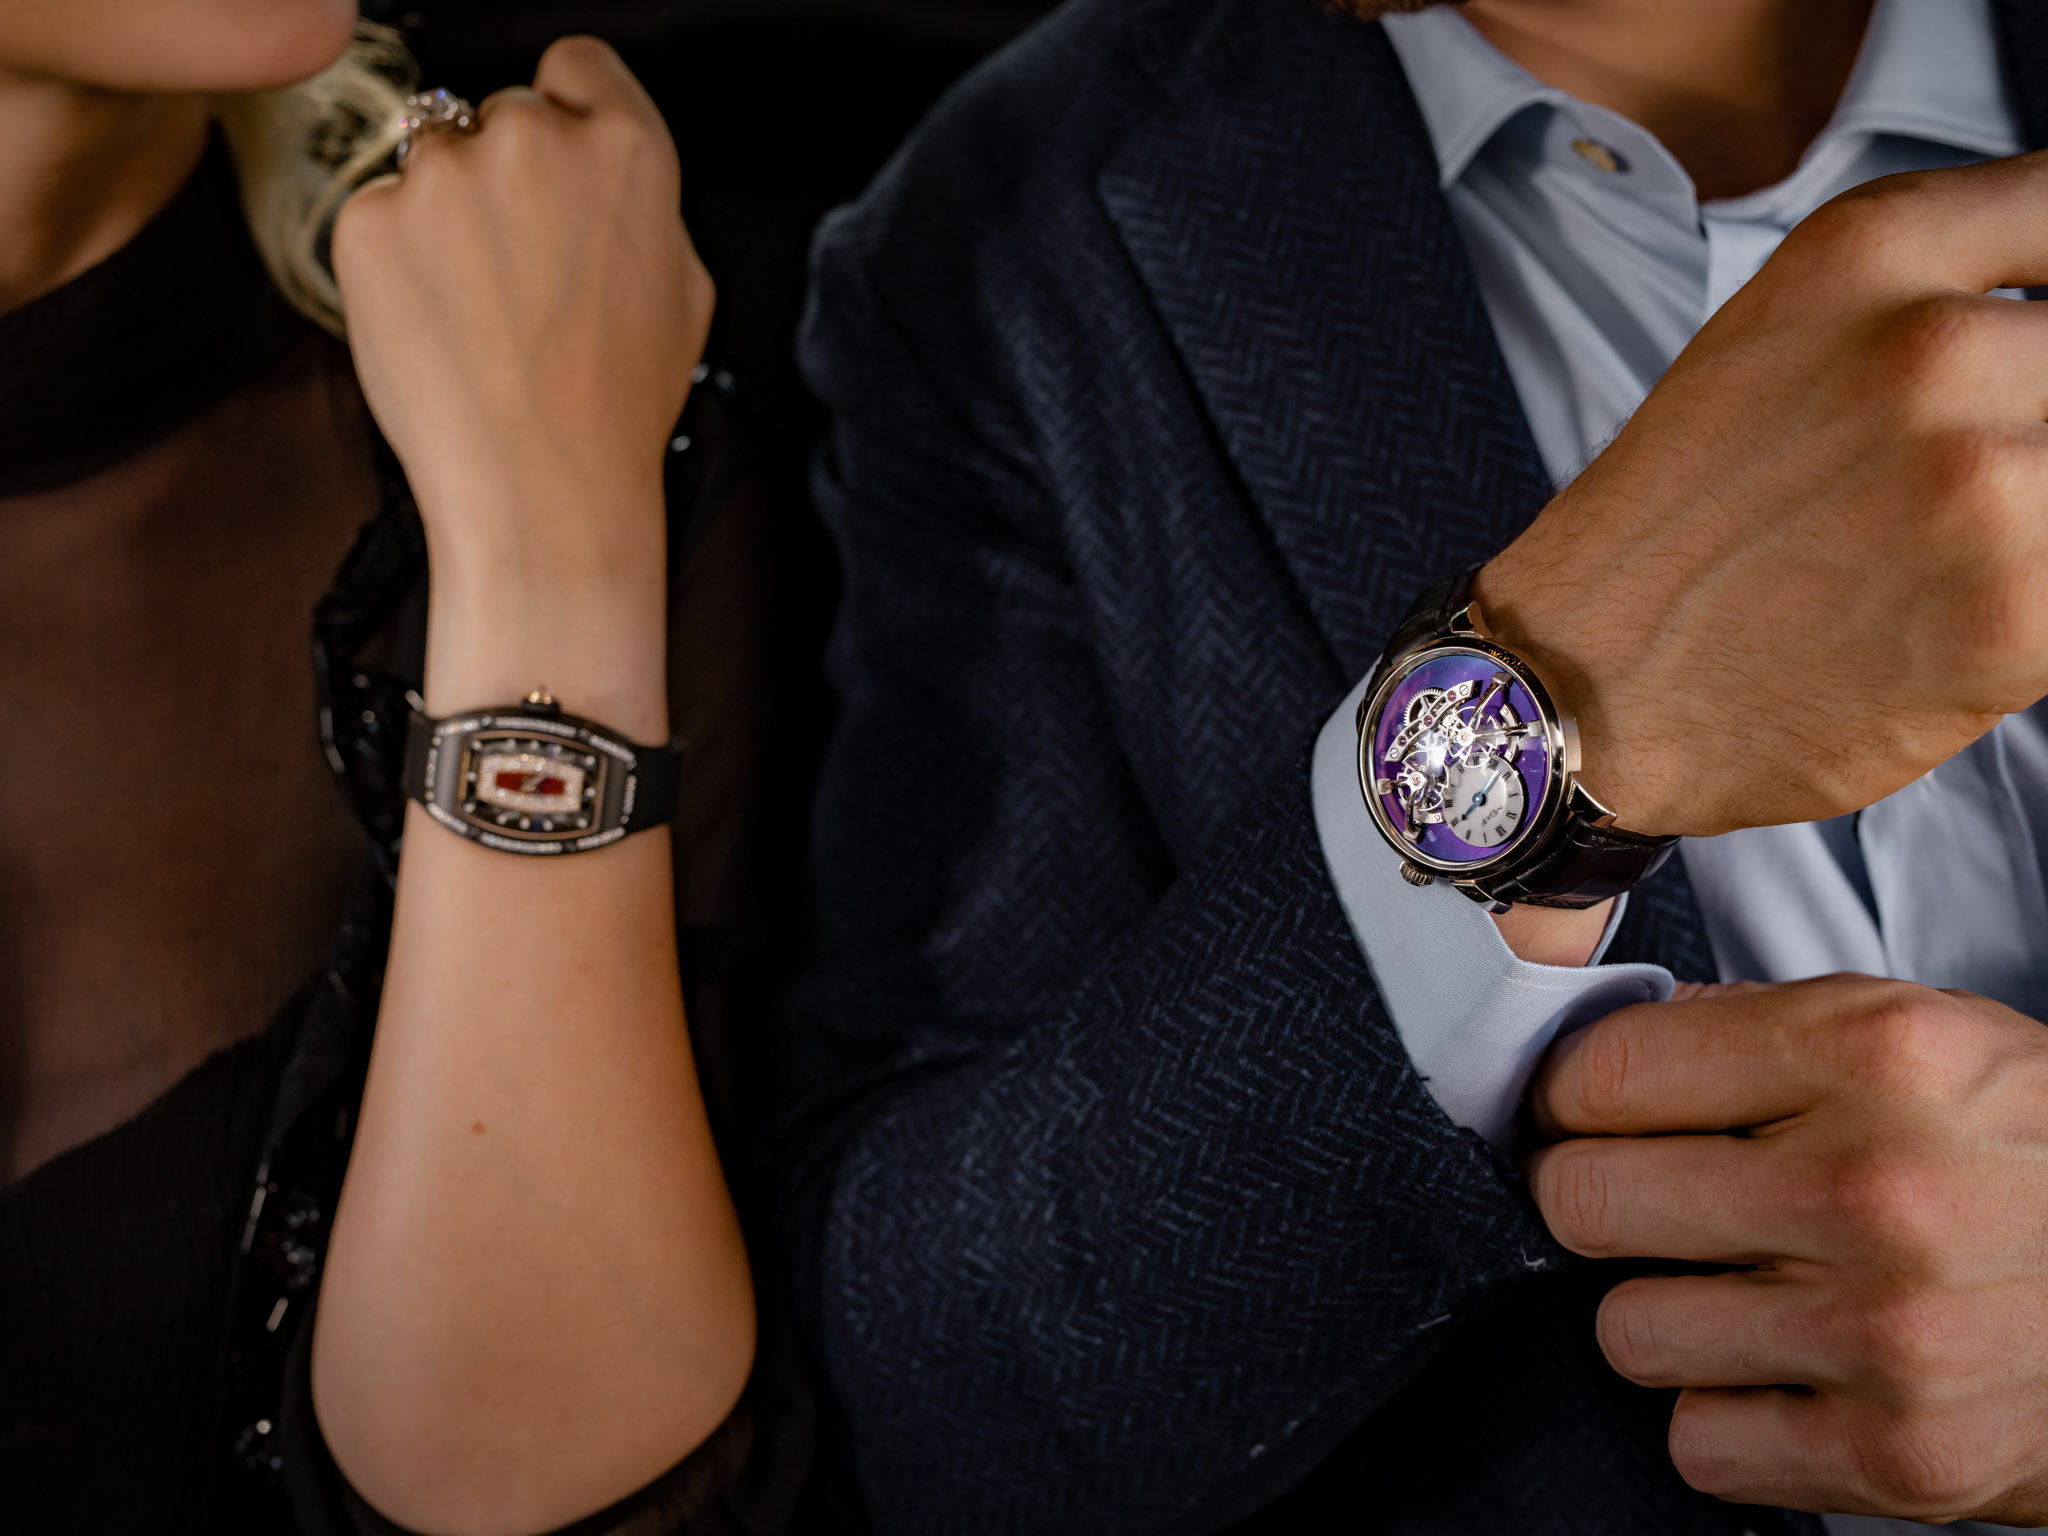 product photography of watches and jewelry